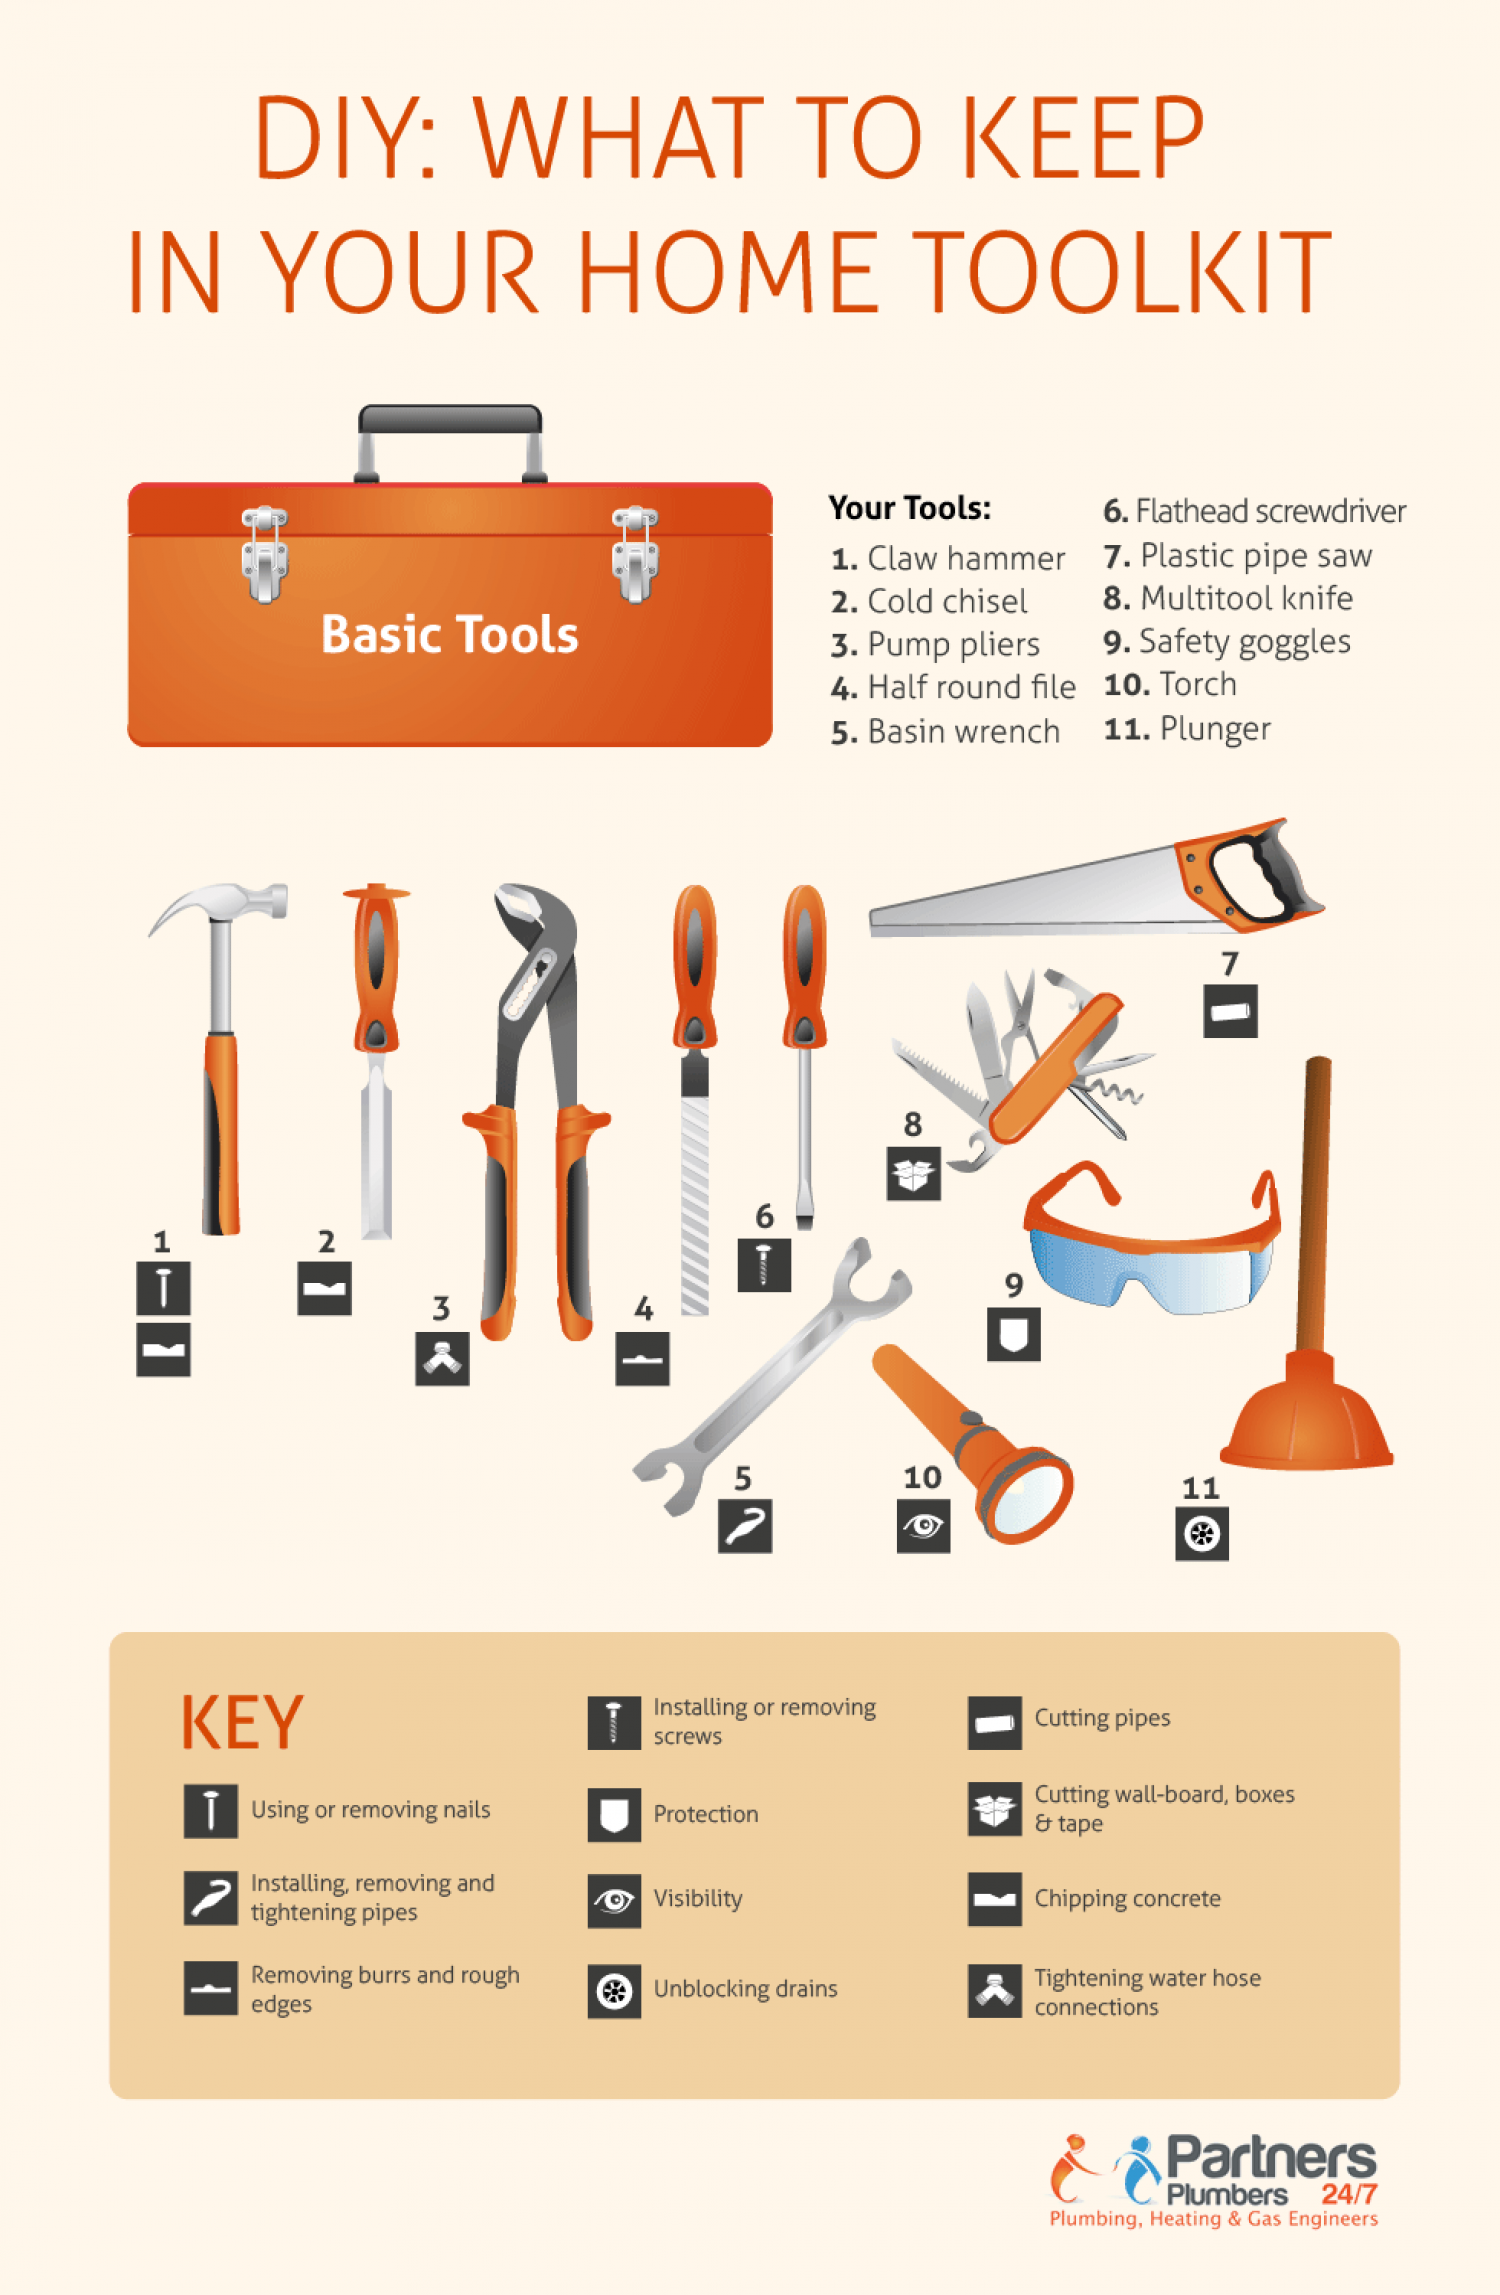 DIY: What to Keep in Your Home Toolkit Infographic